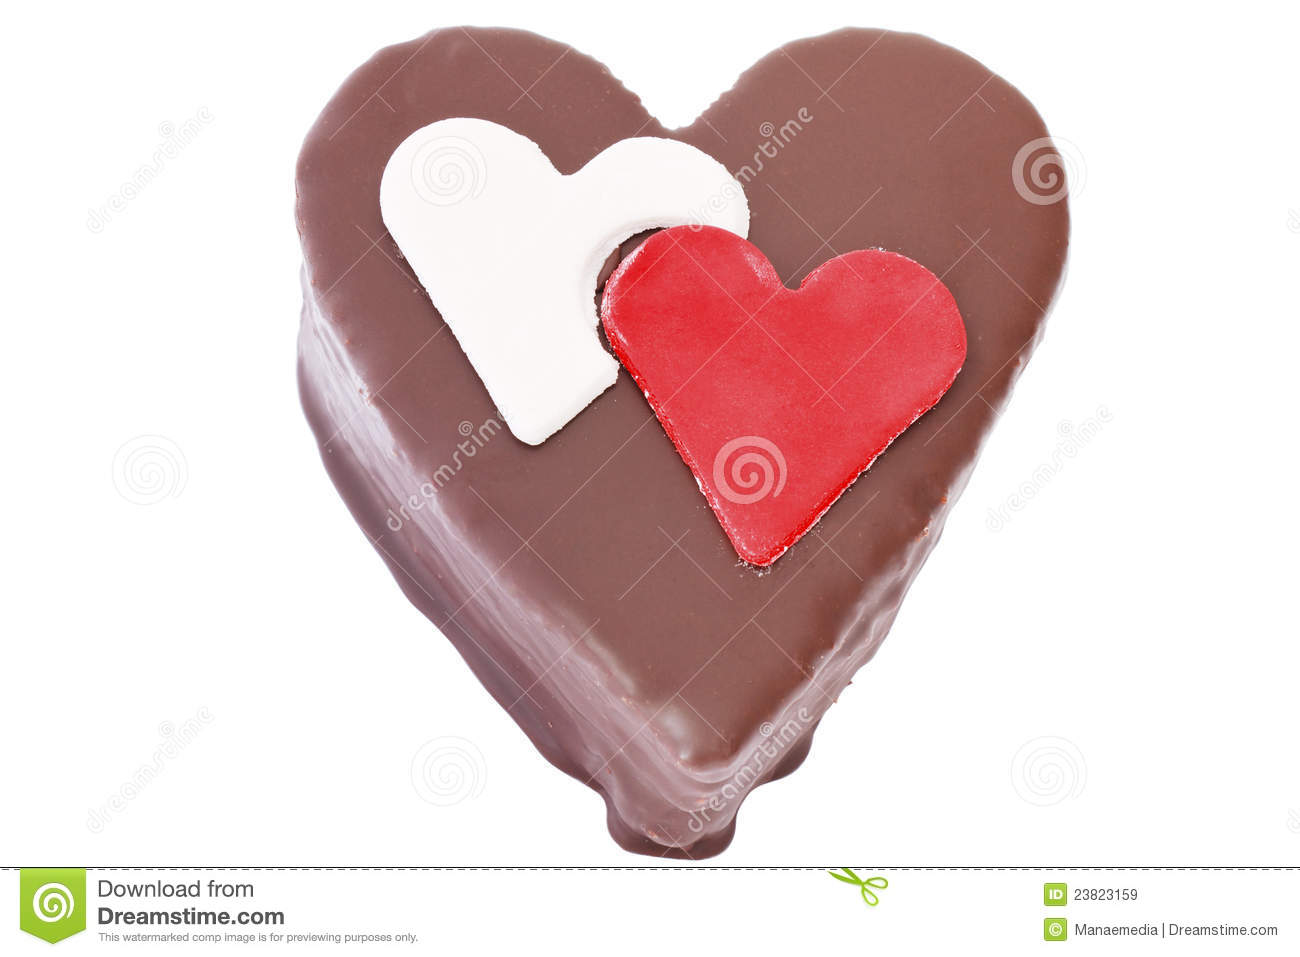 Heart Shaped Cake Stock Photos : Heart Shaped Slice Of A Chocolate-cake Royalty Free Stock ...